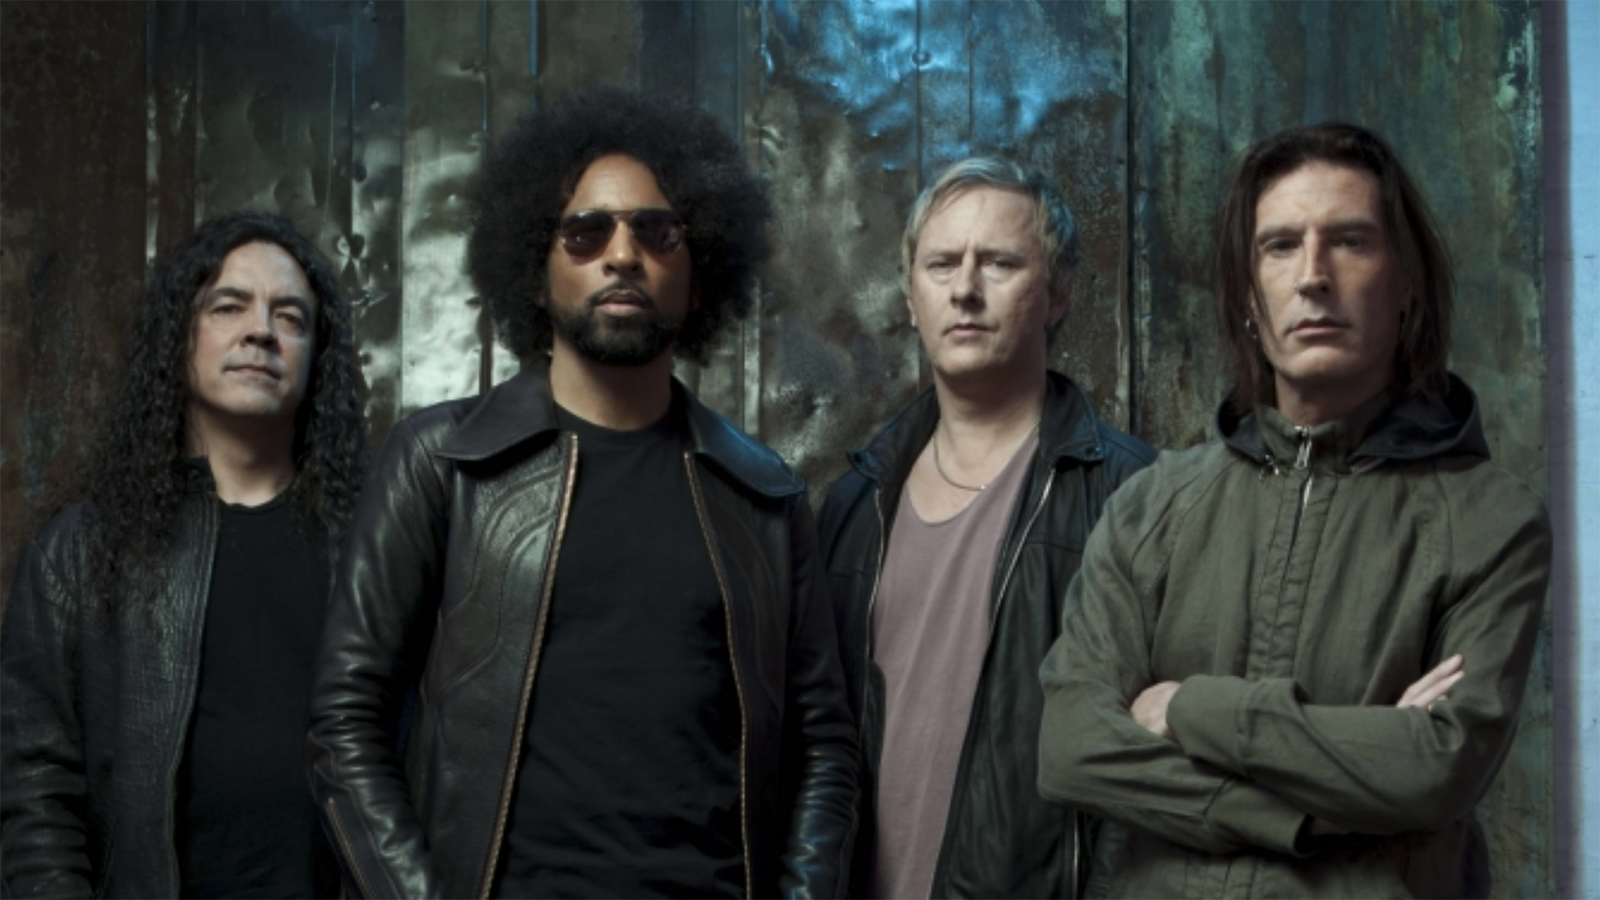 Injuries, Pressure, Ciphers: Inside Alice in Chains' 'The Devil Put Dinosaurs Here'